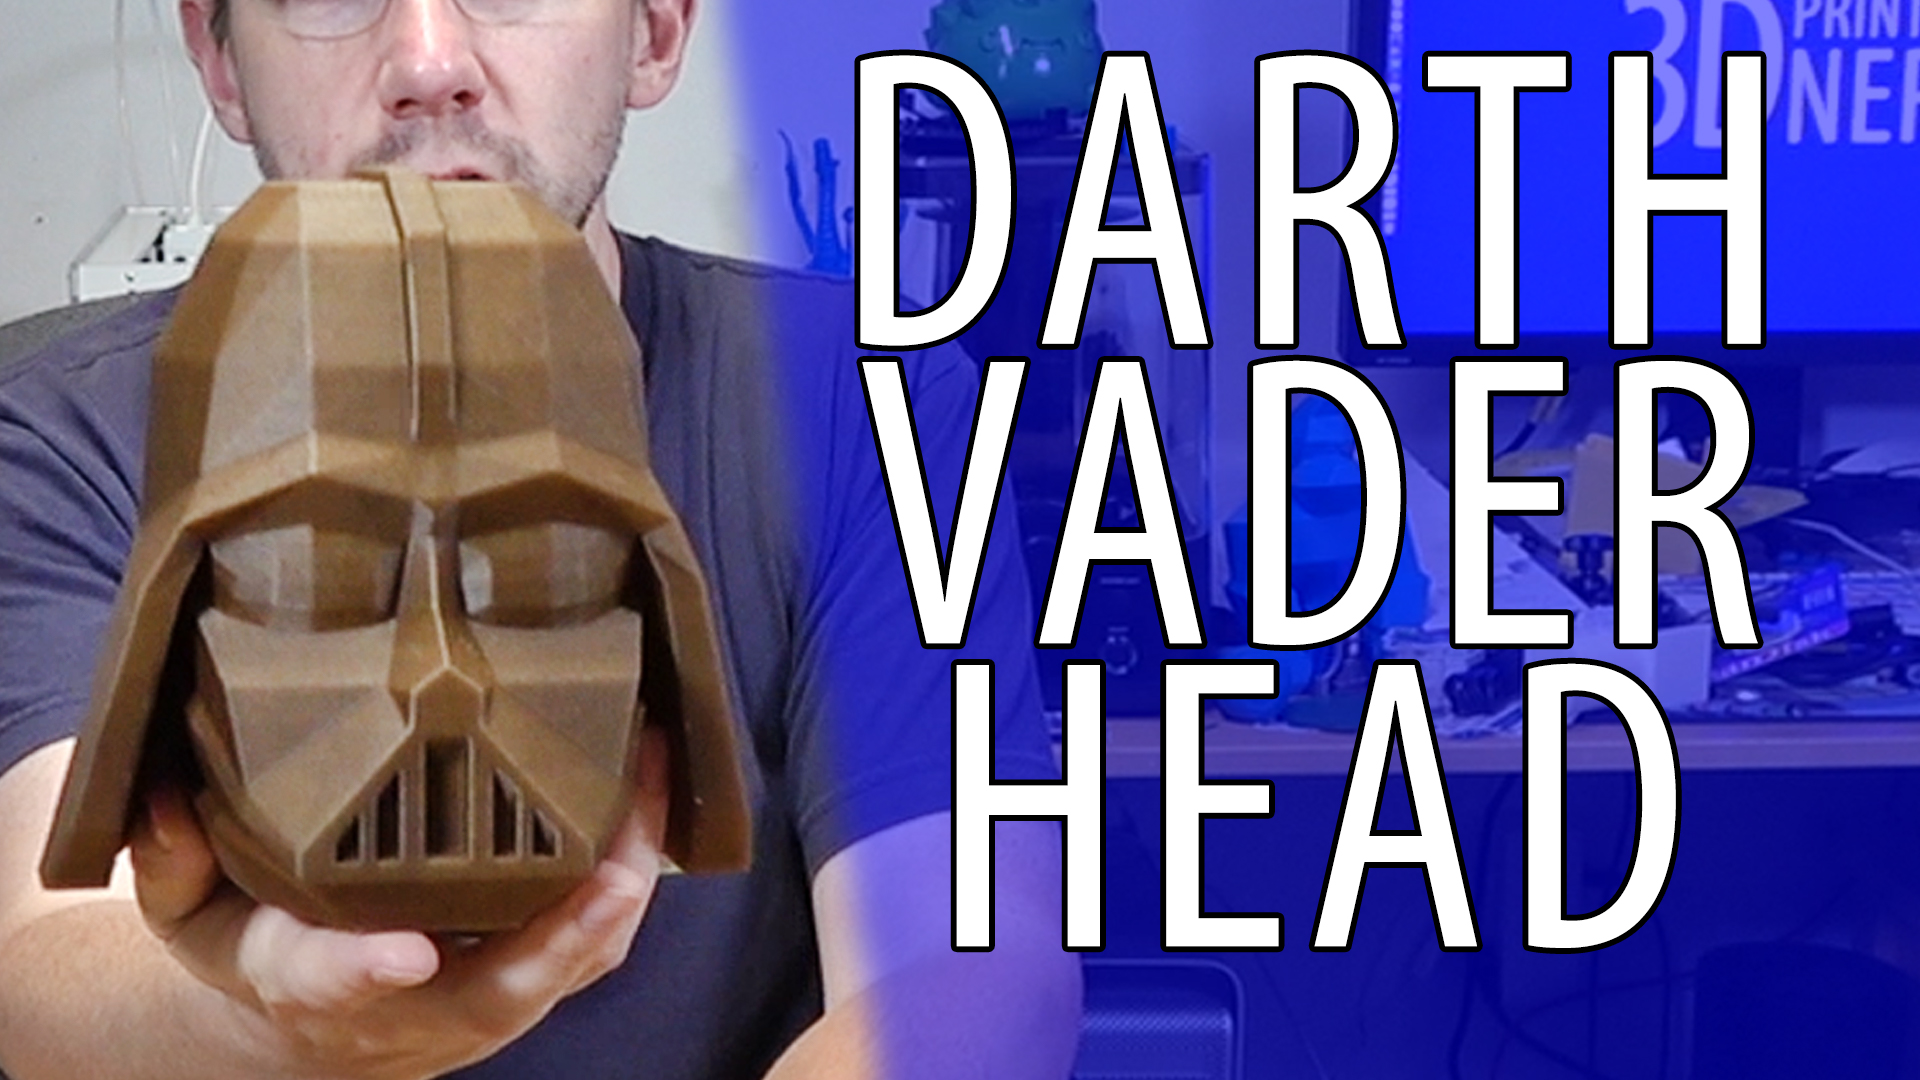 3D Printing a Proto Pasta Aromatic Pine Darth Vader Head